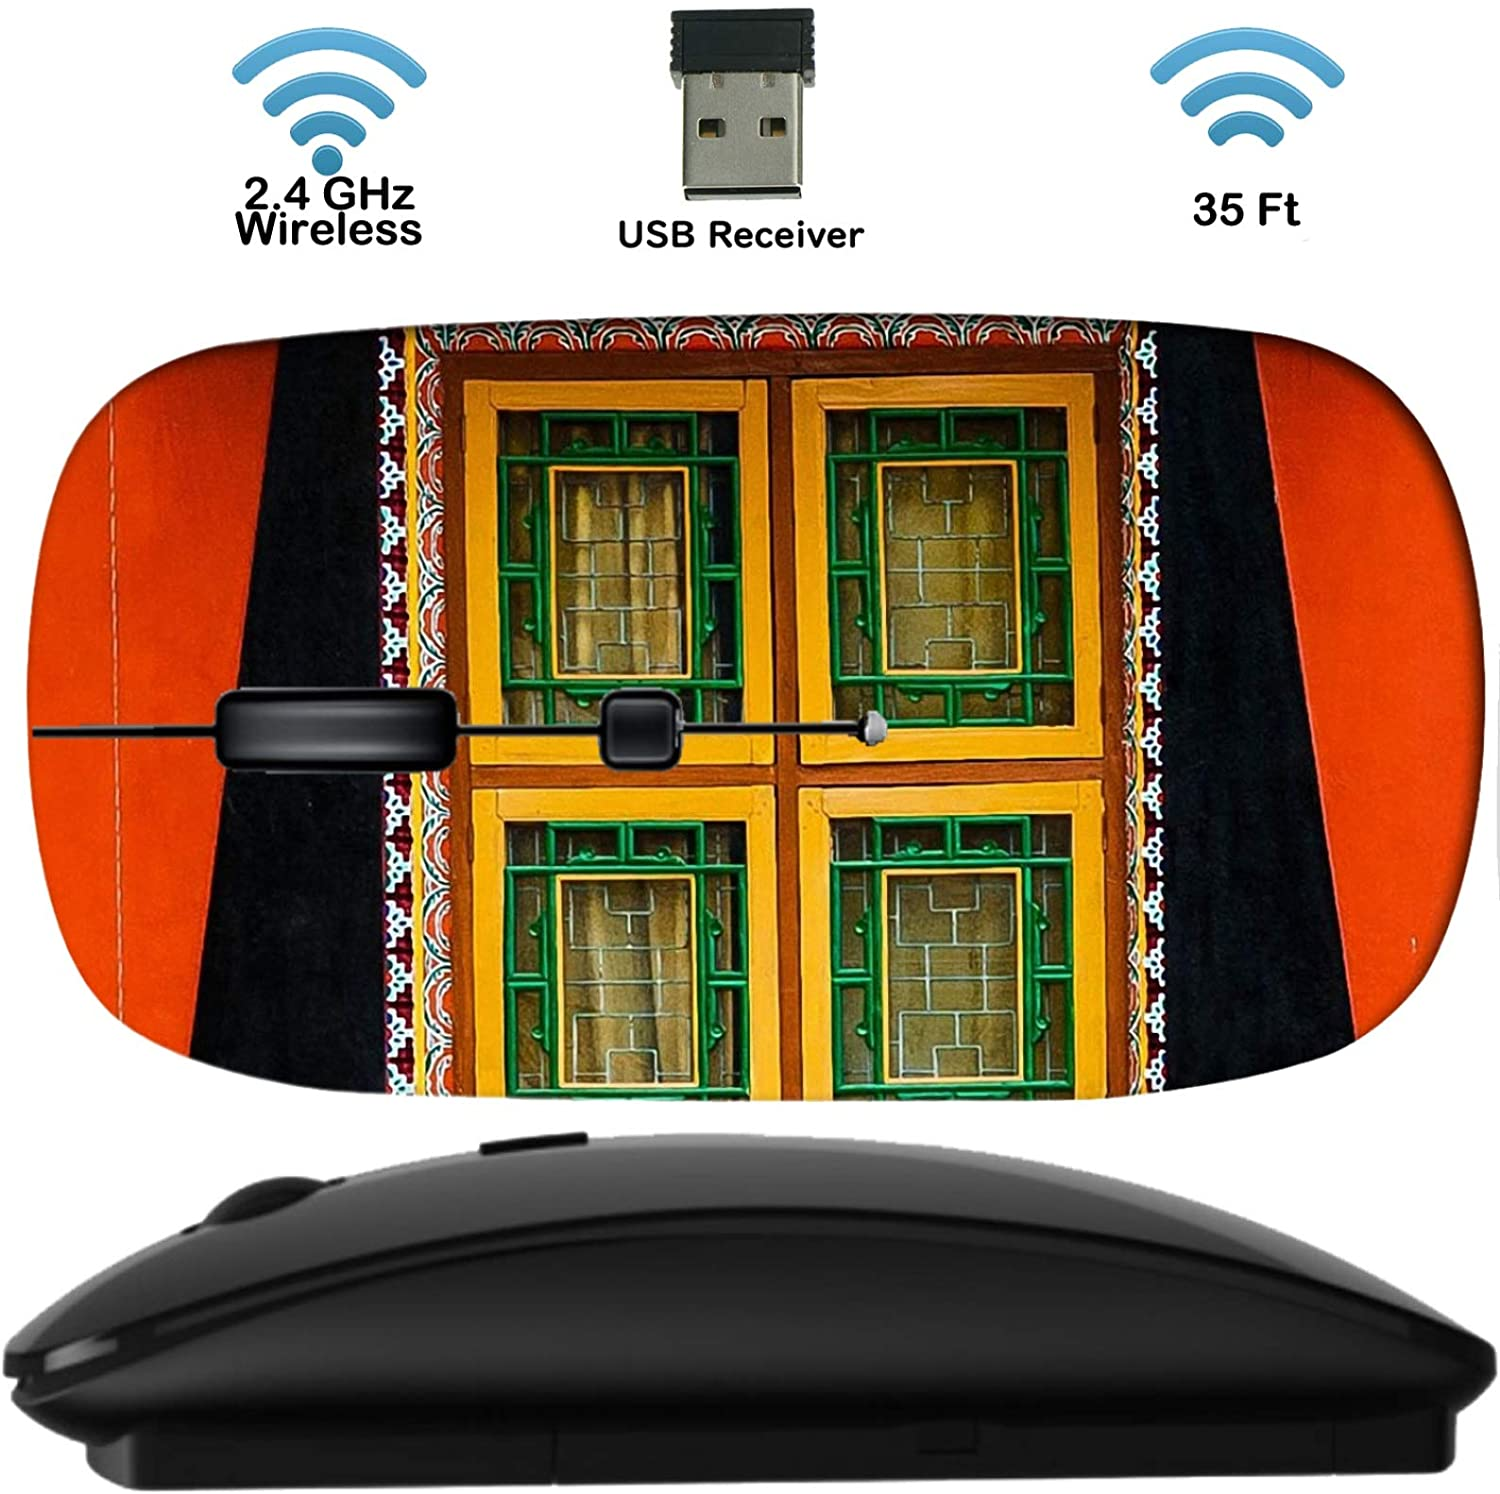 Wireless Mouse Computer Mice Black Base 2.4G with USB Receiver, Cordless Portable and Silent Click with 1000 DPI for Notebook PC Laptop Computer Macbook IMAGE of architecture decoration wall old house